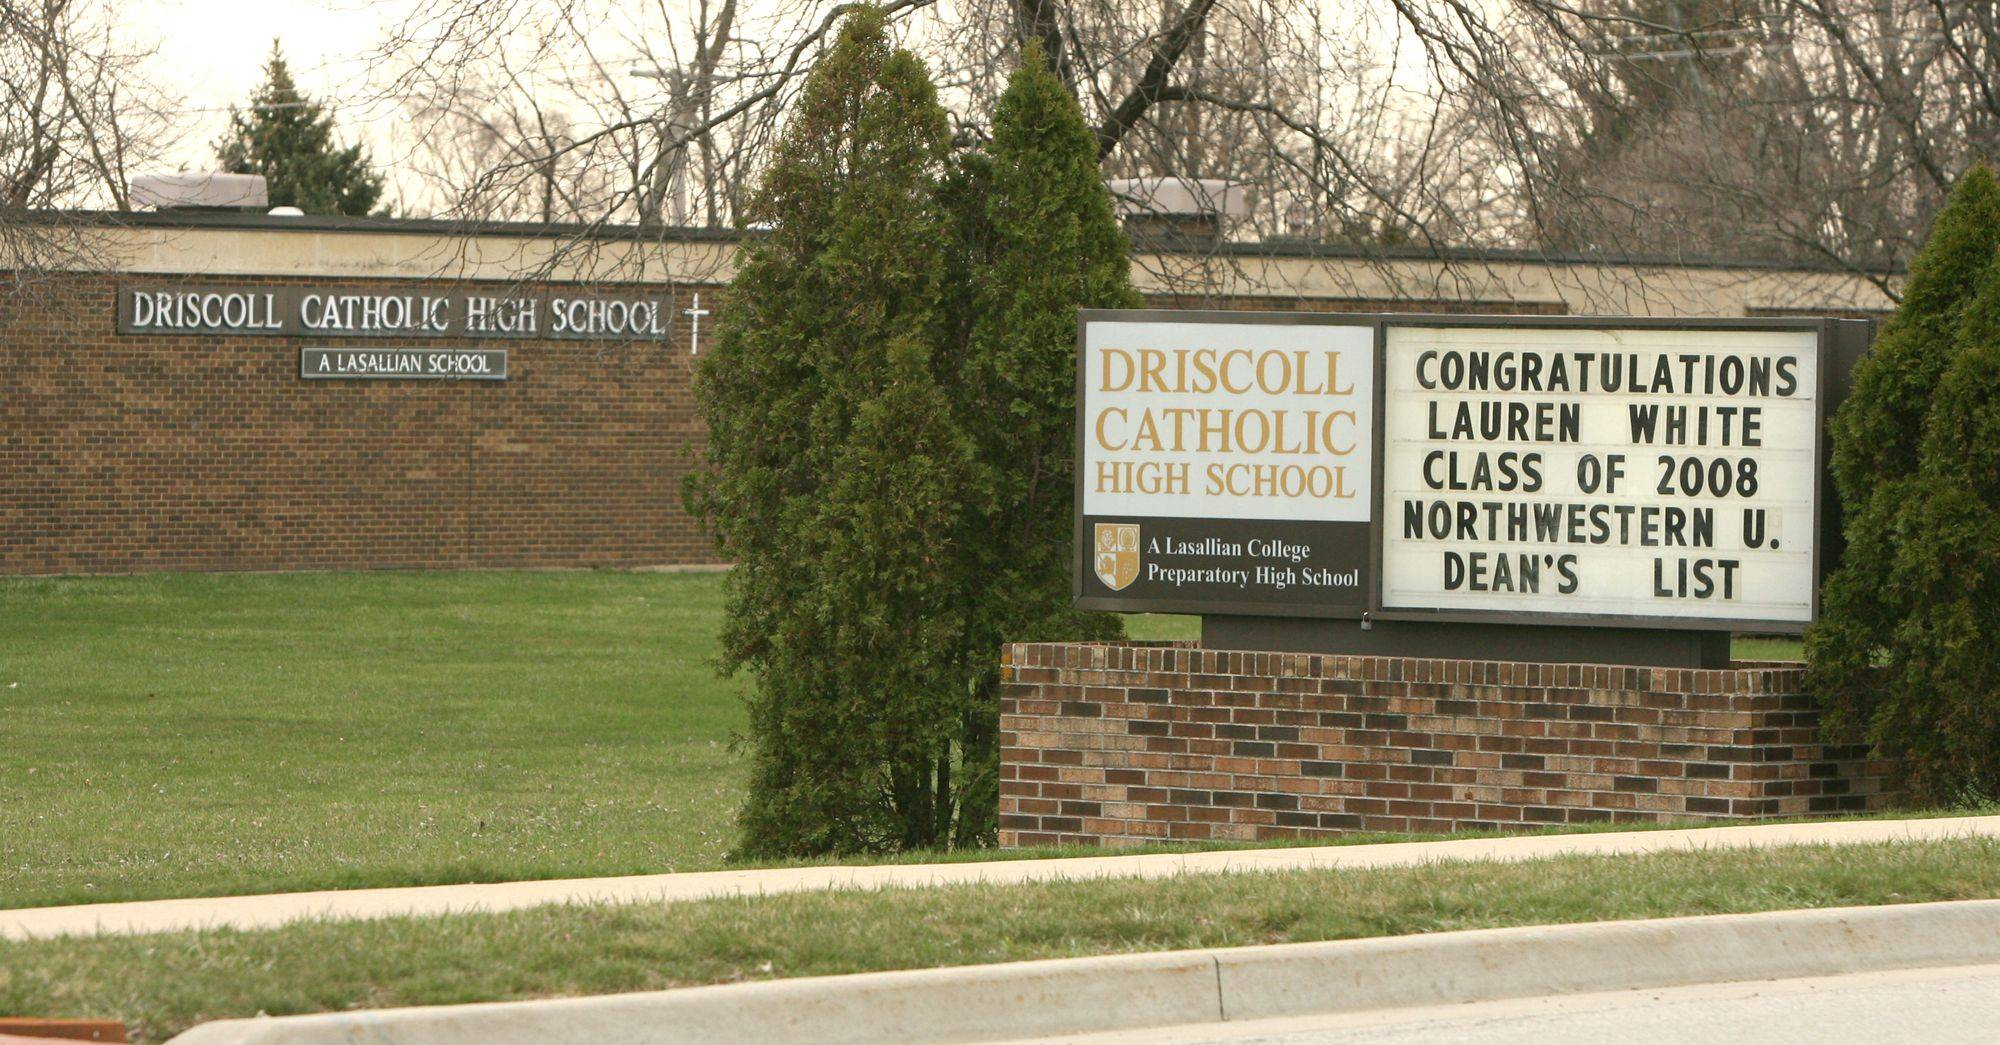 A ceremonial start of the demolition of the Driscoll Catholic High School building in Addison is set for 10 a.m. Monday.